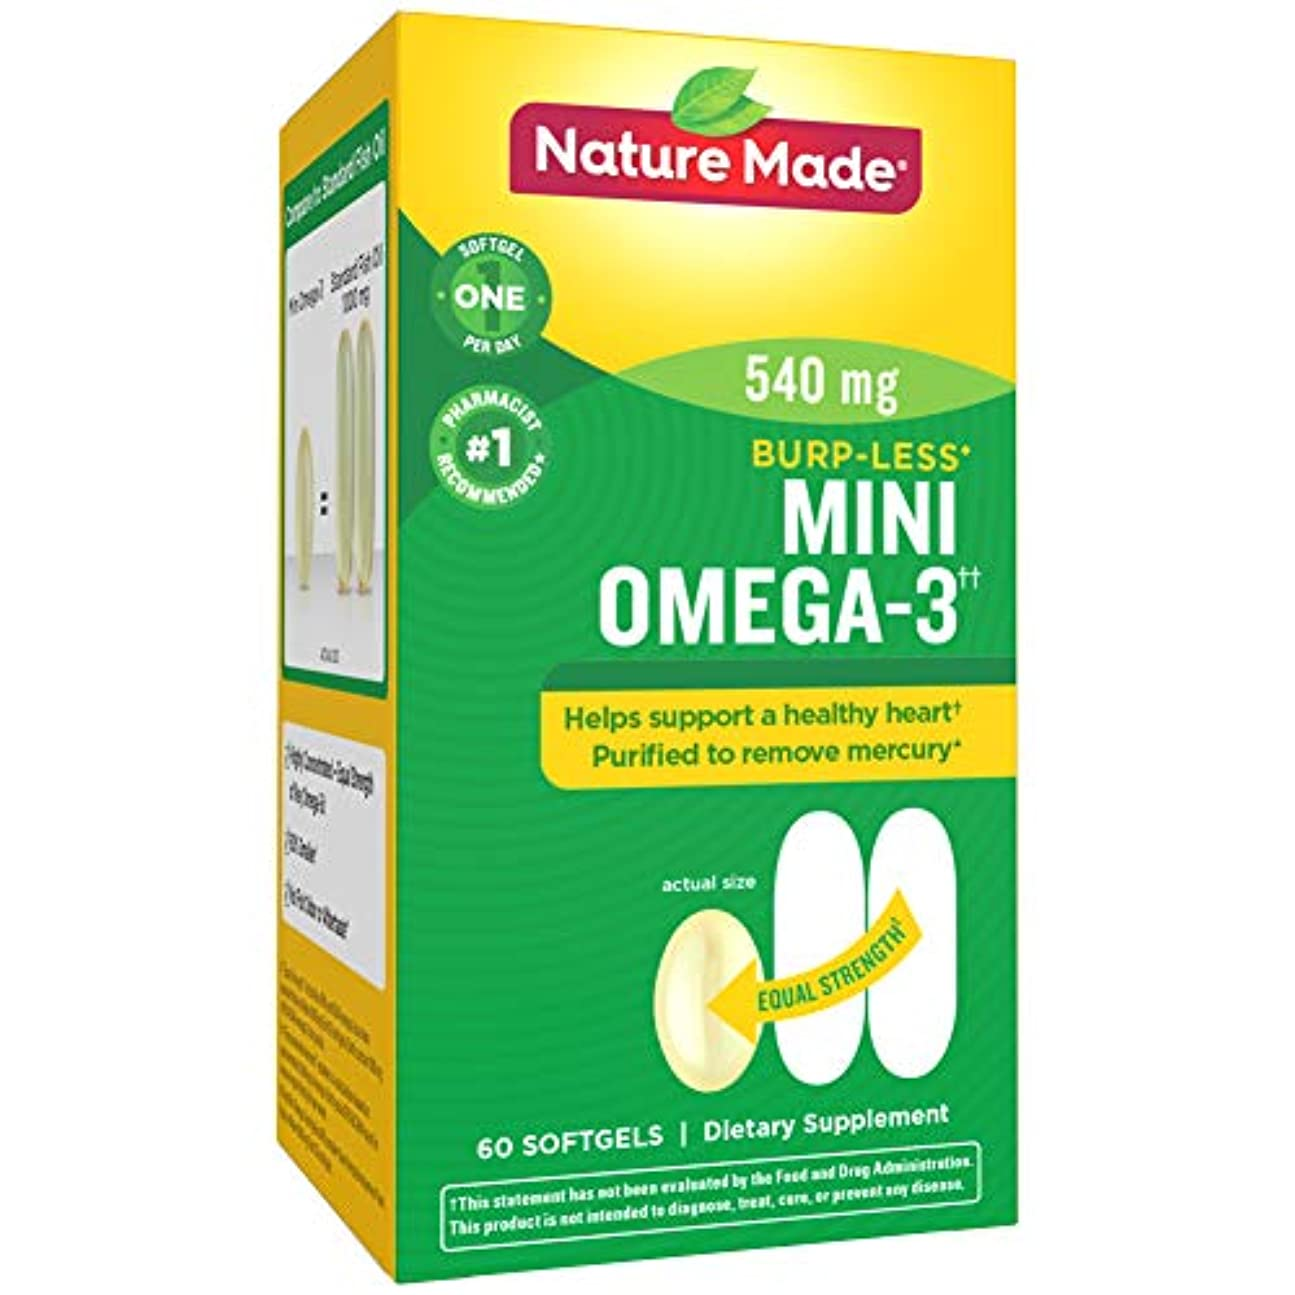 欠席奇跡的な取り囲むNature Made Super Omega-3 Fish Oil Full Strength Softgels, Mini, 60 Count 海外直送品